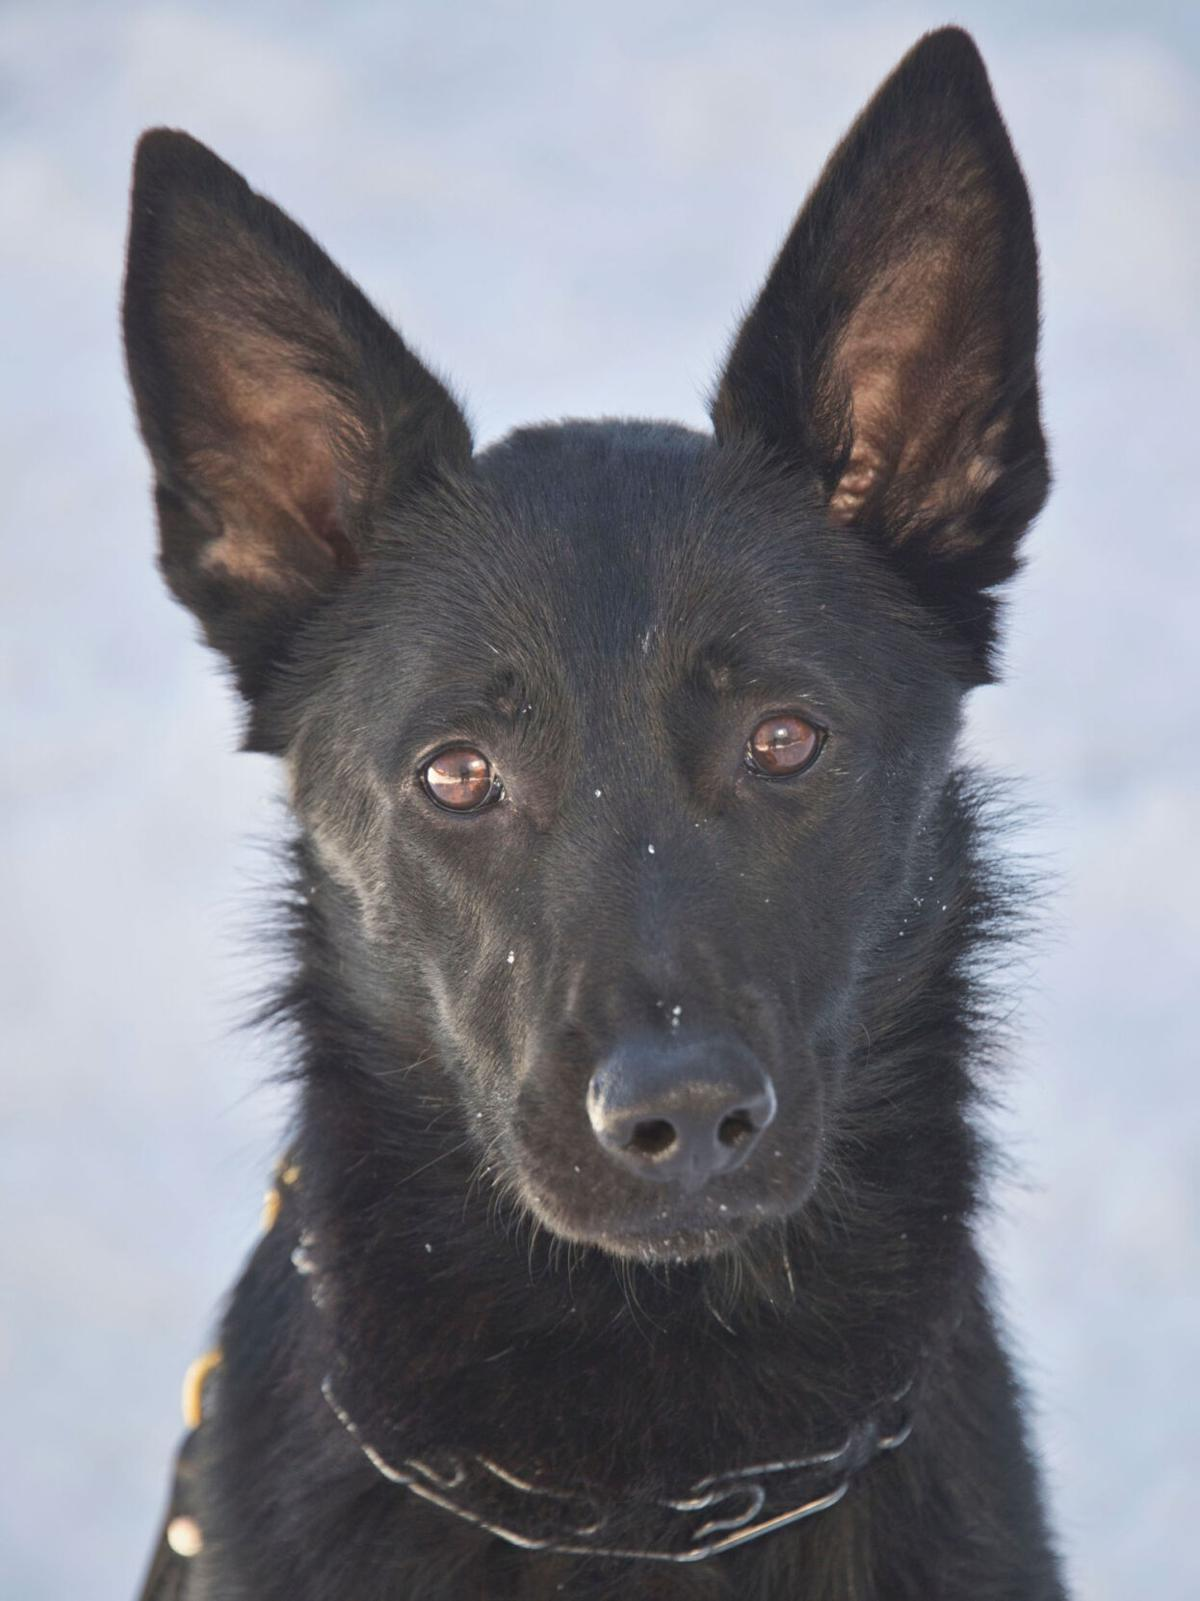 New K-9 on duty for sheriff's office